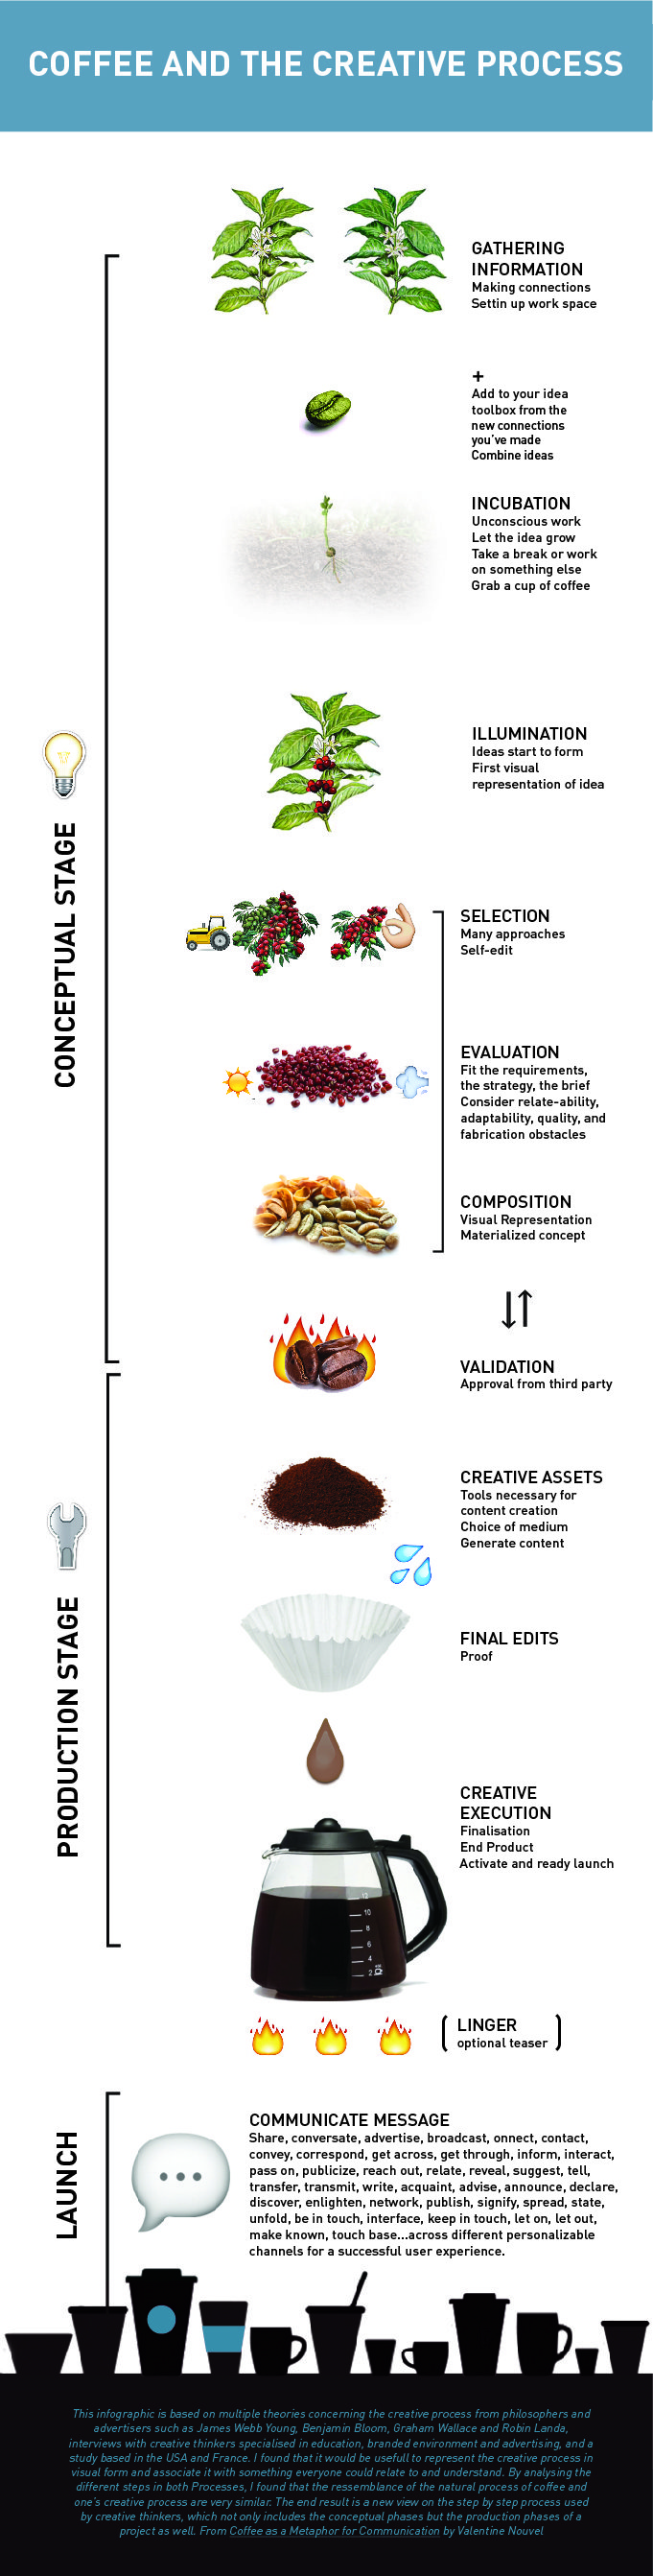 Infographic-Coffee-CreativeProcess